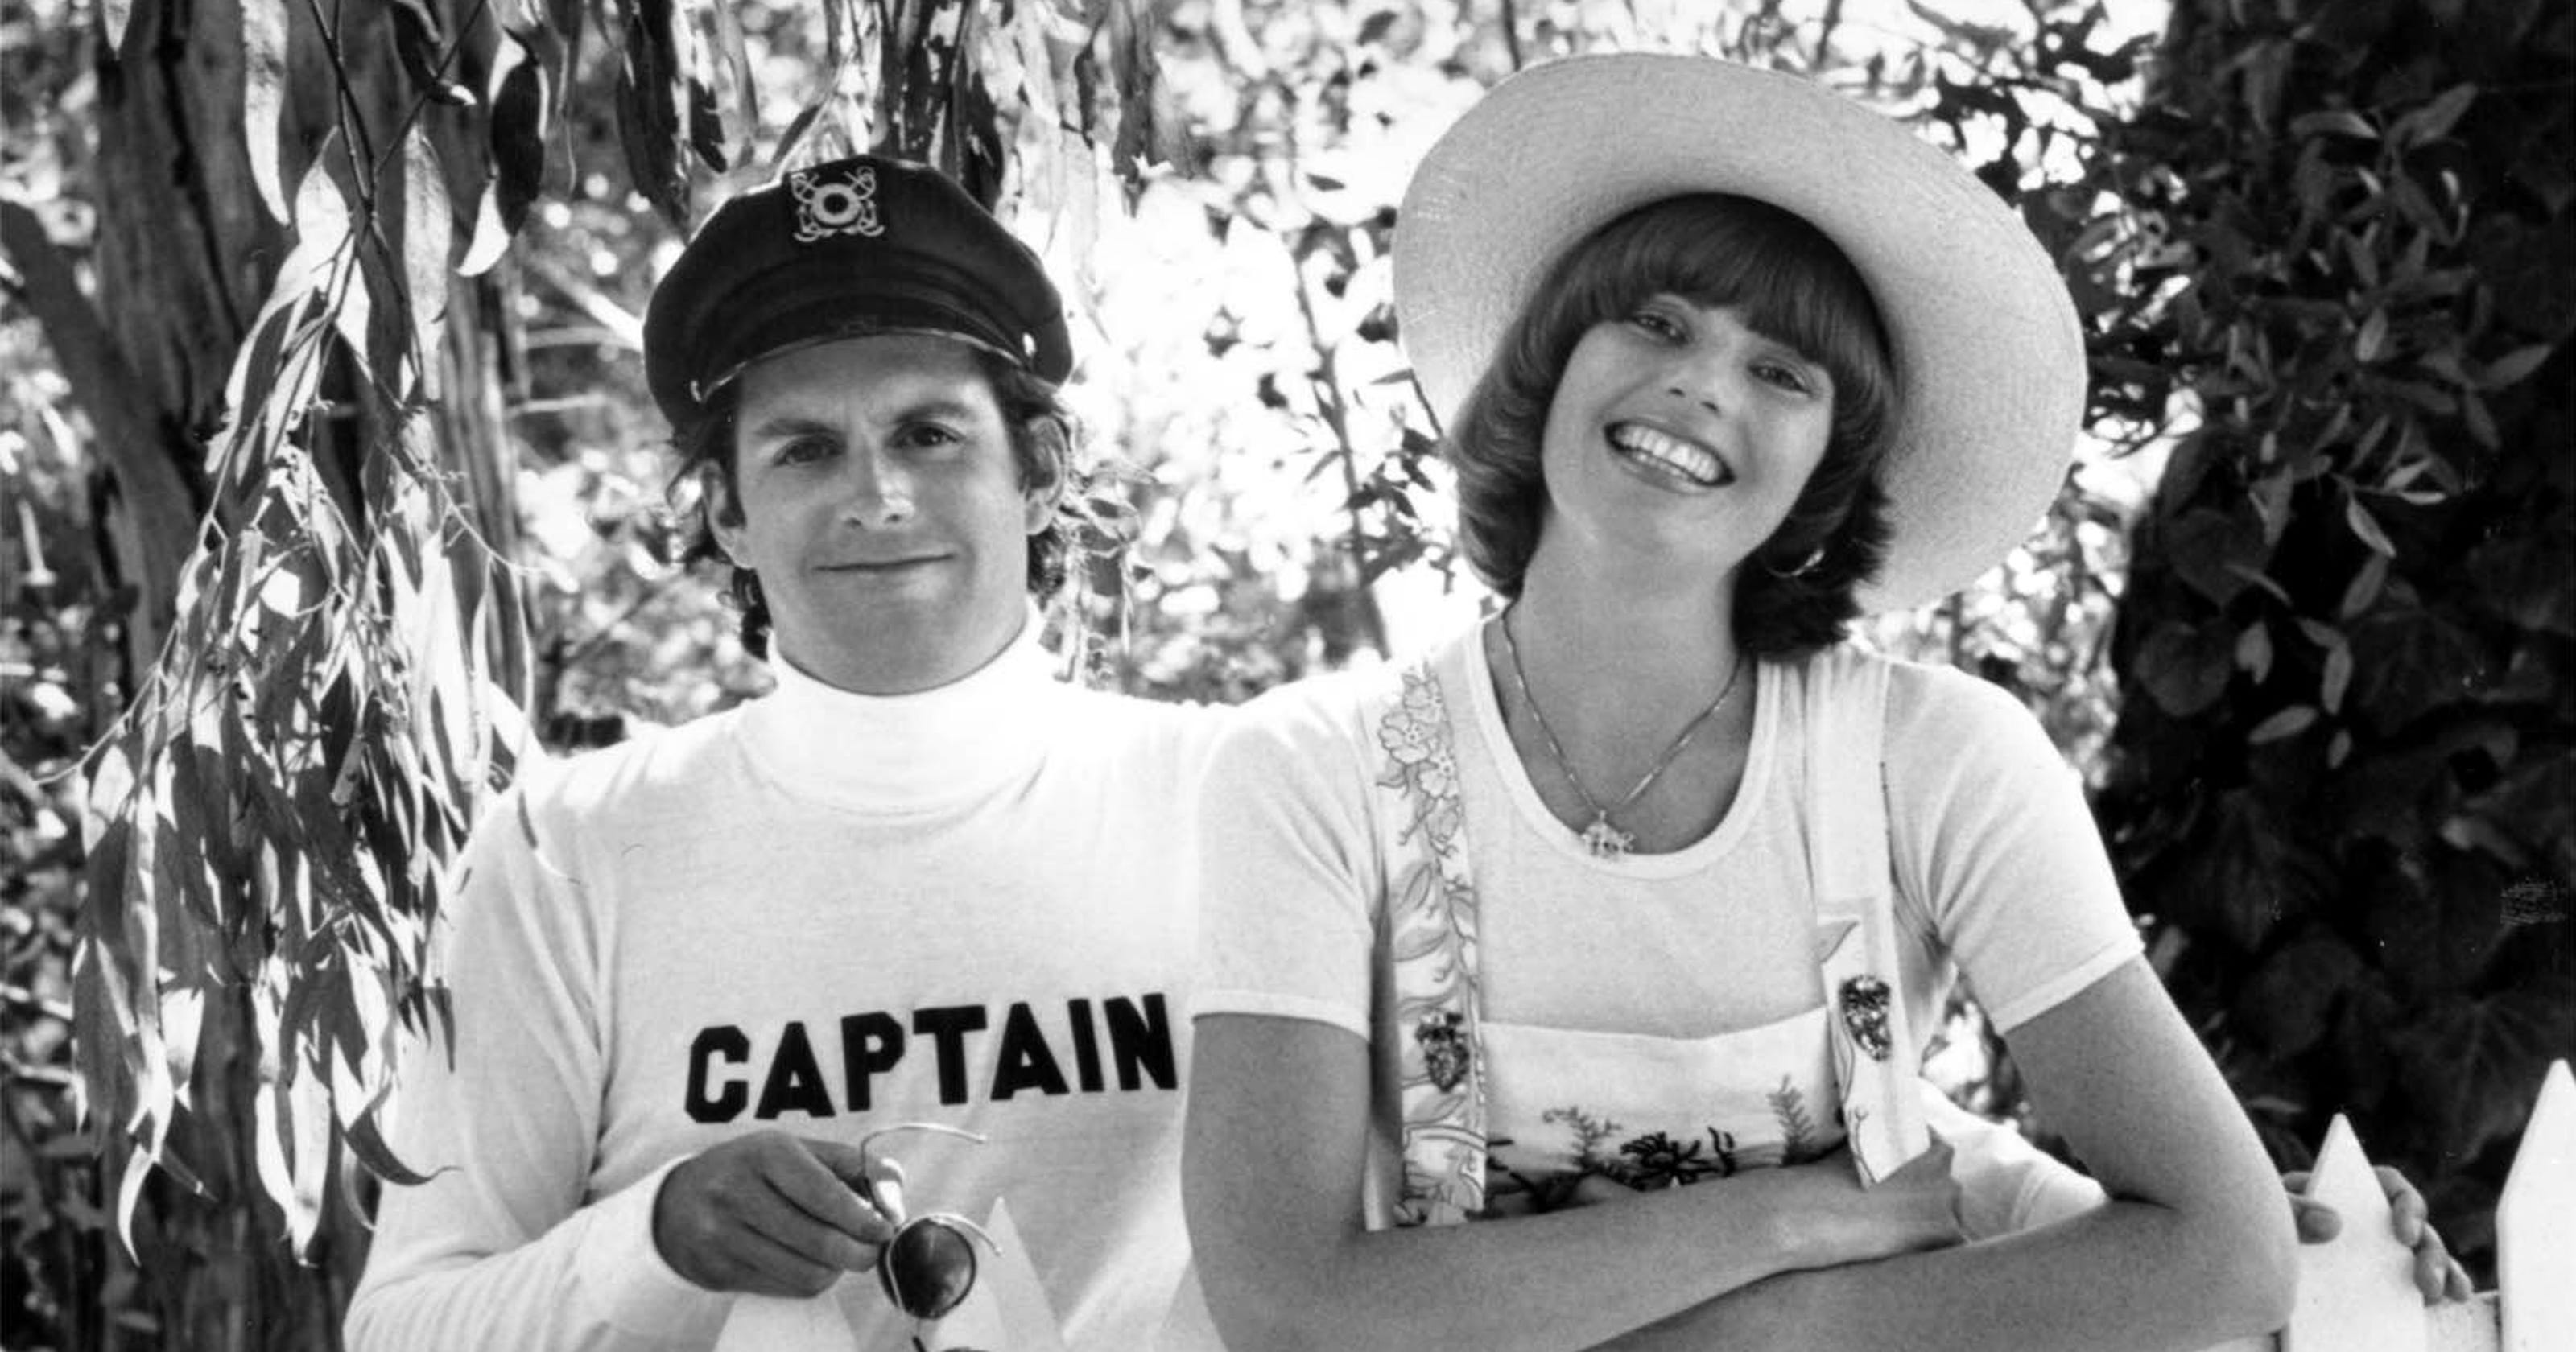 Daryl Dragon Of Captain Tennille Has Died In Prescott At 76